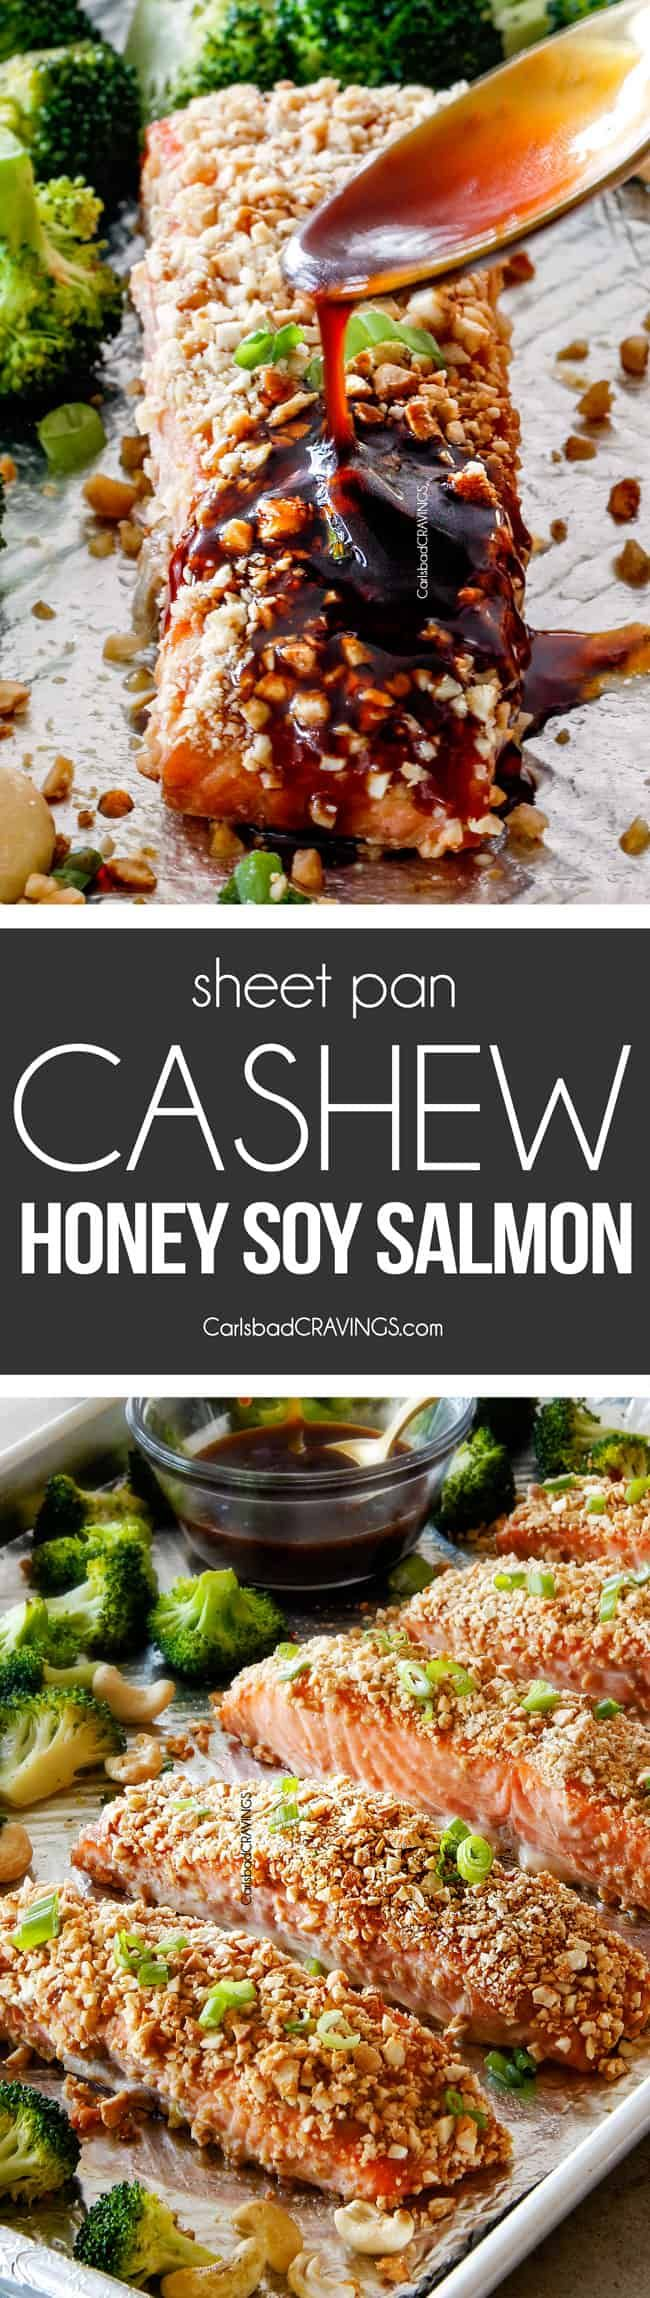 This Sheet Pan Cashew Honey Soy Salmon is a MEAL IN ONE that looks impressive but is SO easy, crazy delicious and healthy! It's tender and juicy on the outside, crusted in crunchy, buttery, roasted cashews on the outside, and drizzled with to-live-for Honey Soy Glaze all over! (sauce would go great on chicken also)